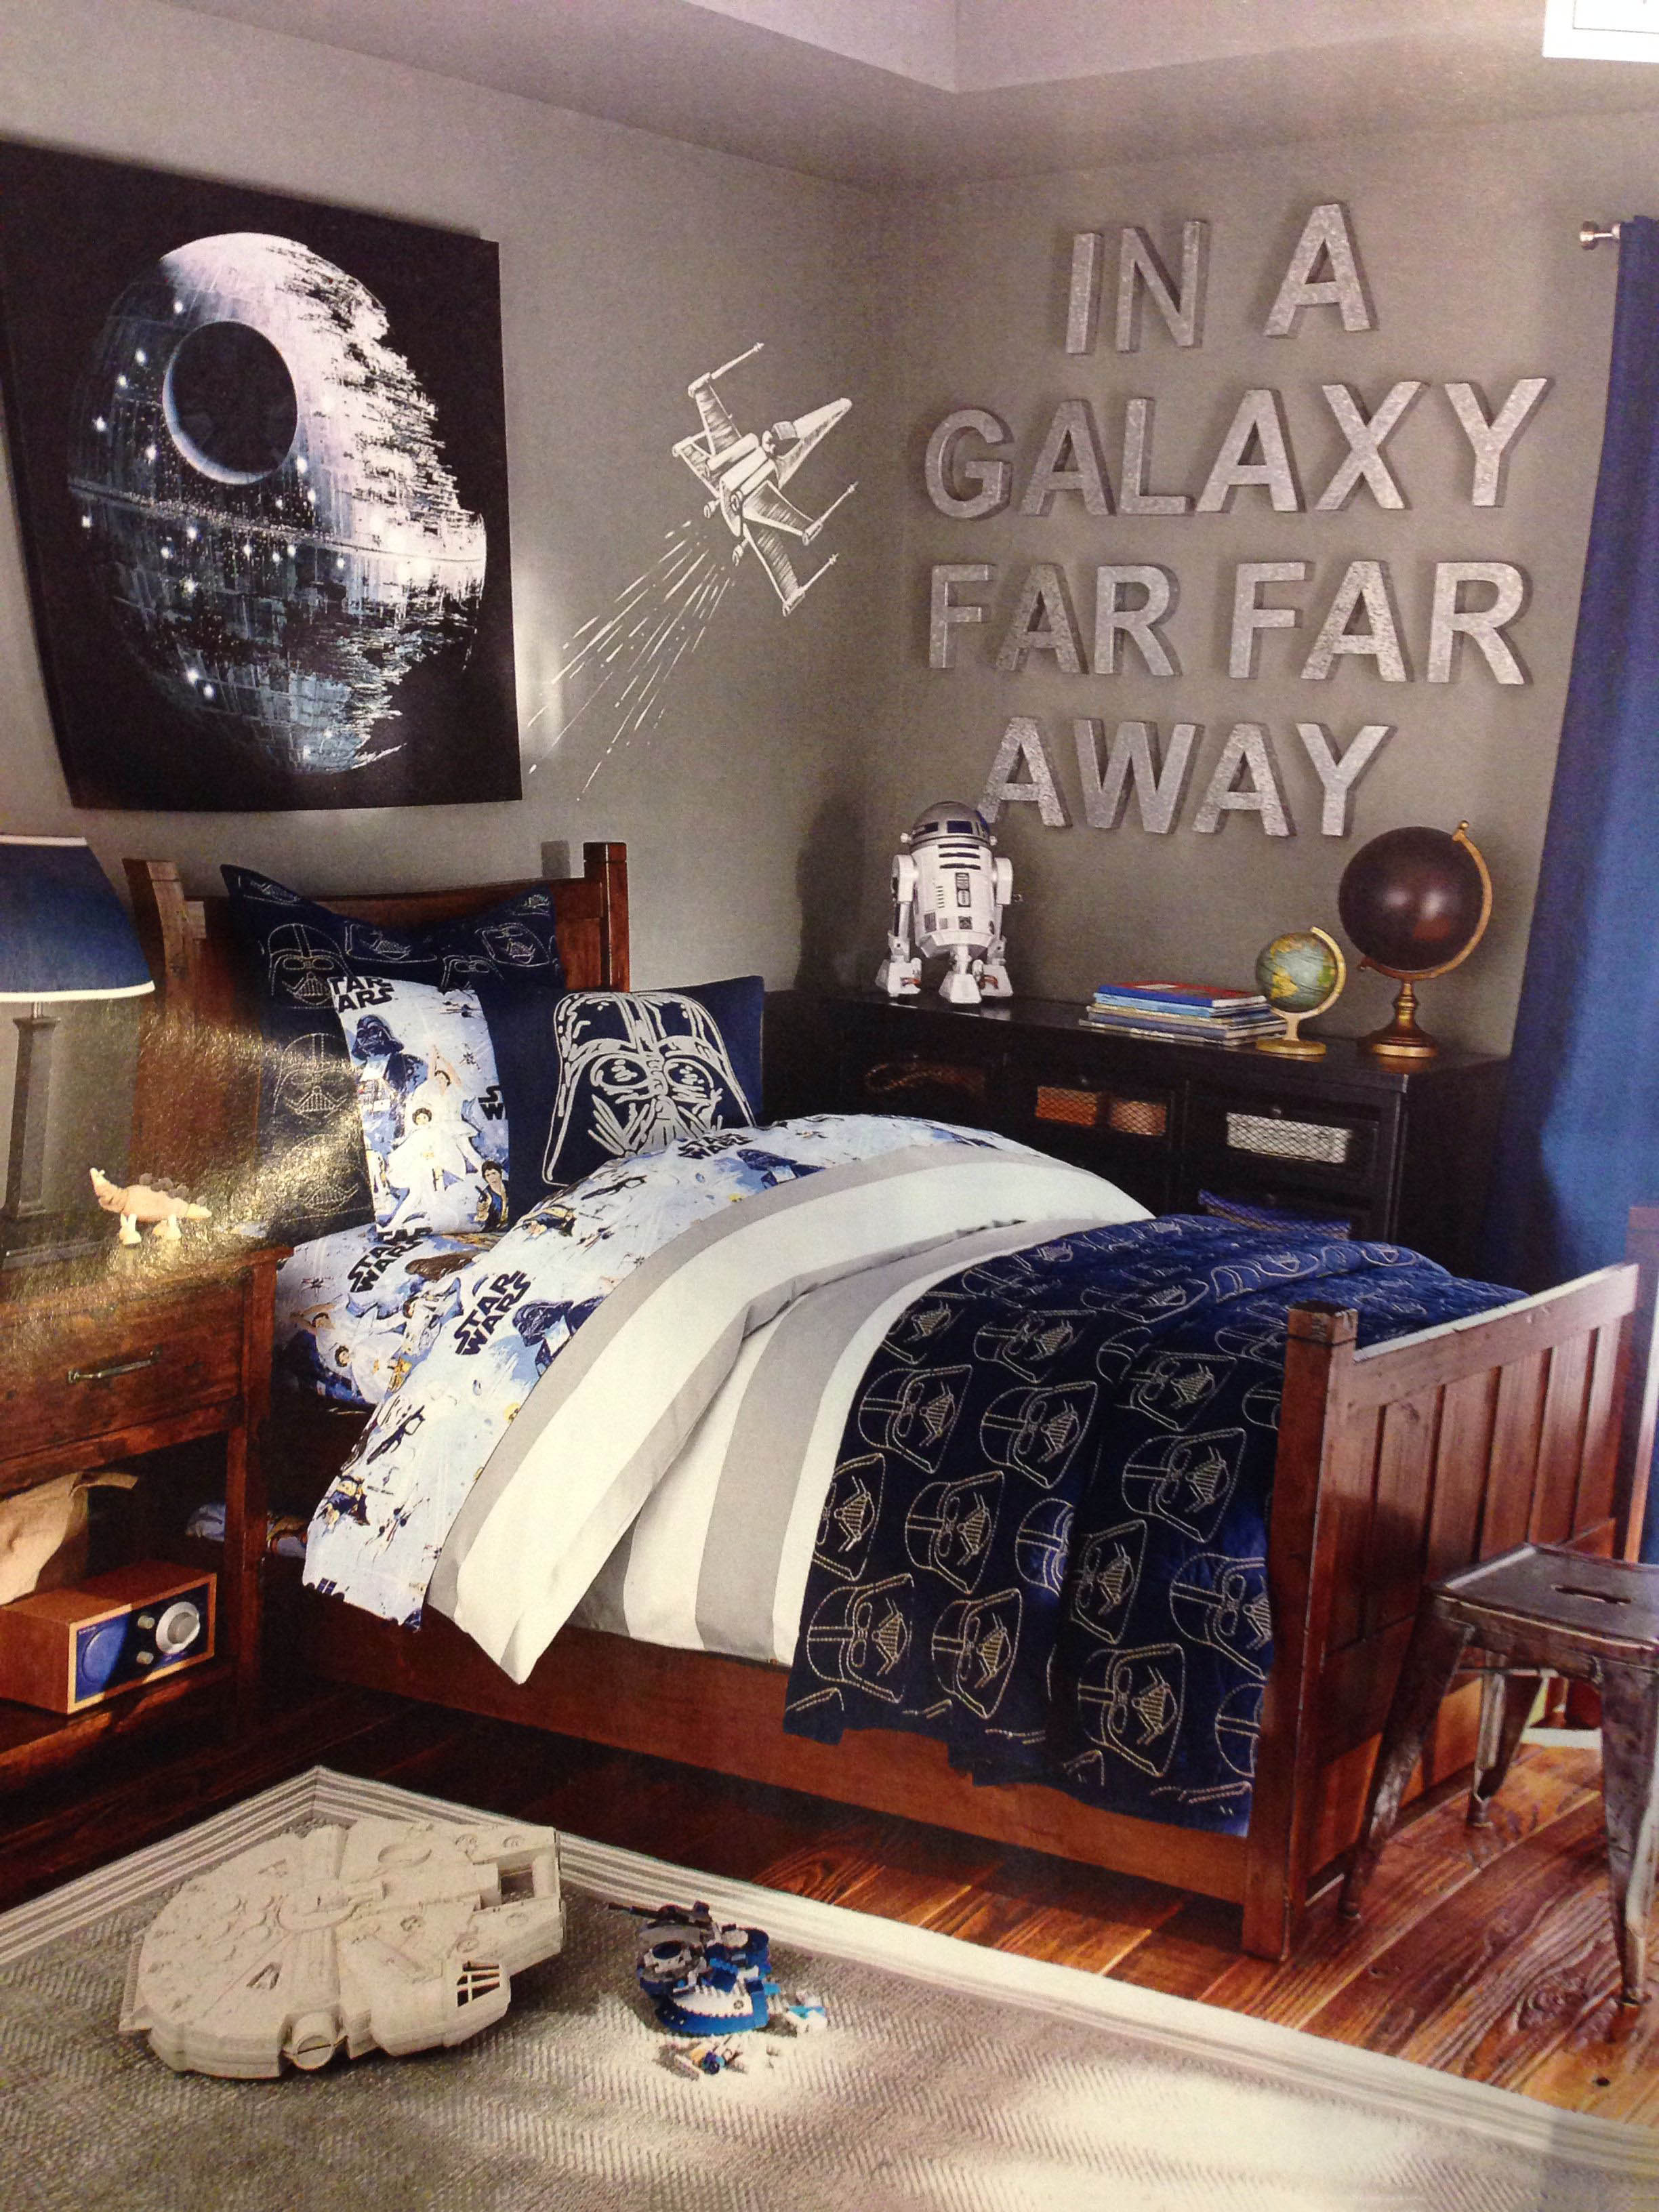 You can always hang metallic lettering to really finish off your Star Wars bedroom.